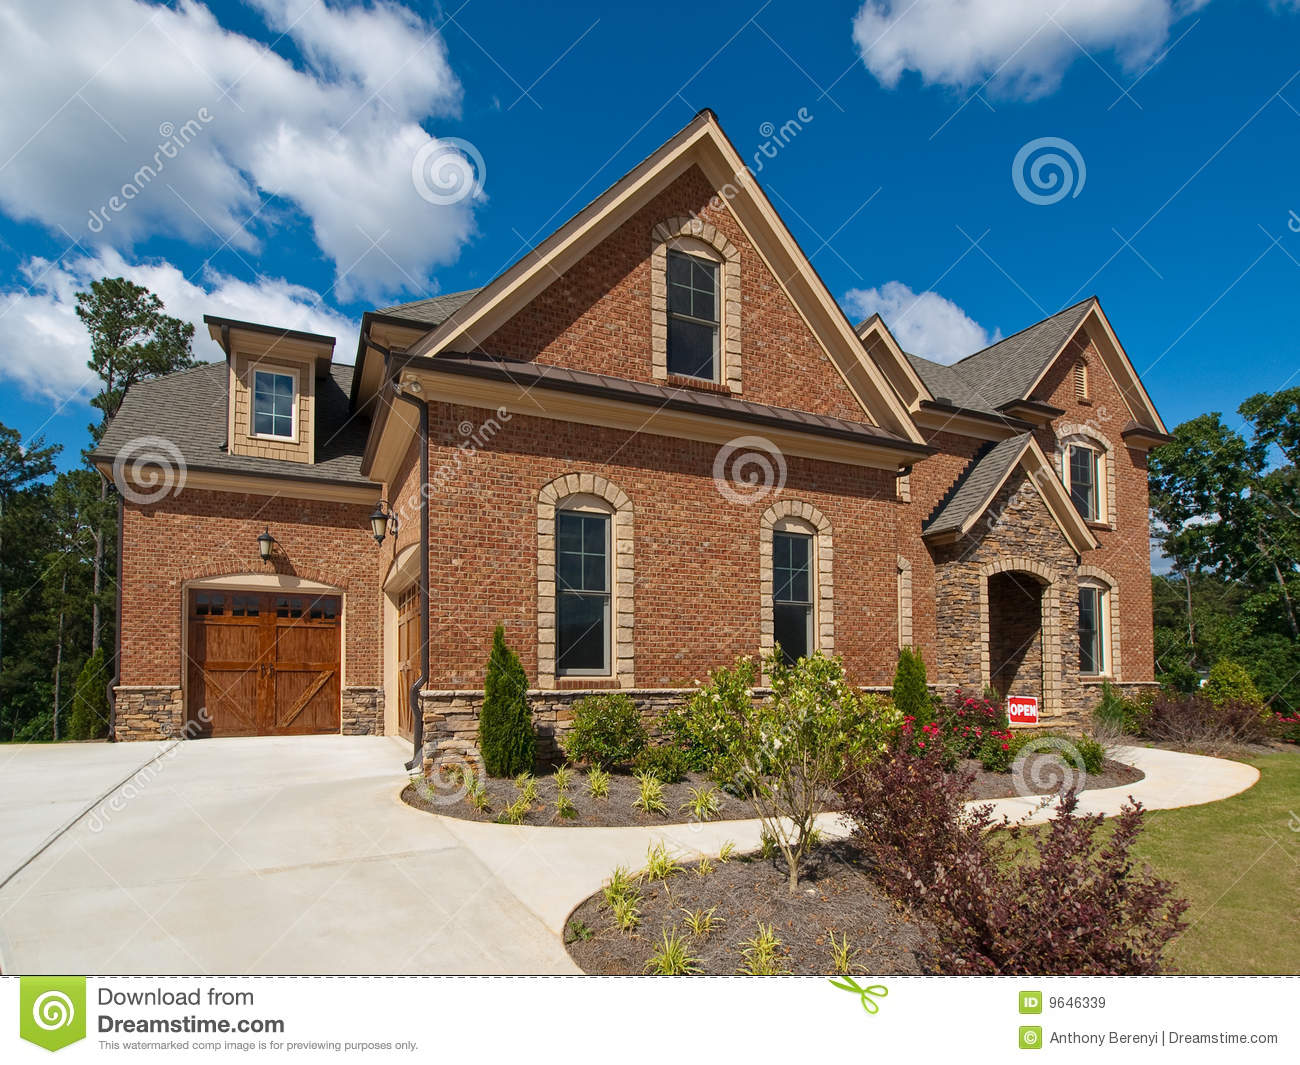 model luxury home exterior side view clouds royalty free - Luxury Homes Exterior Brick